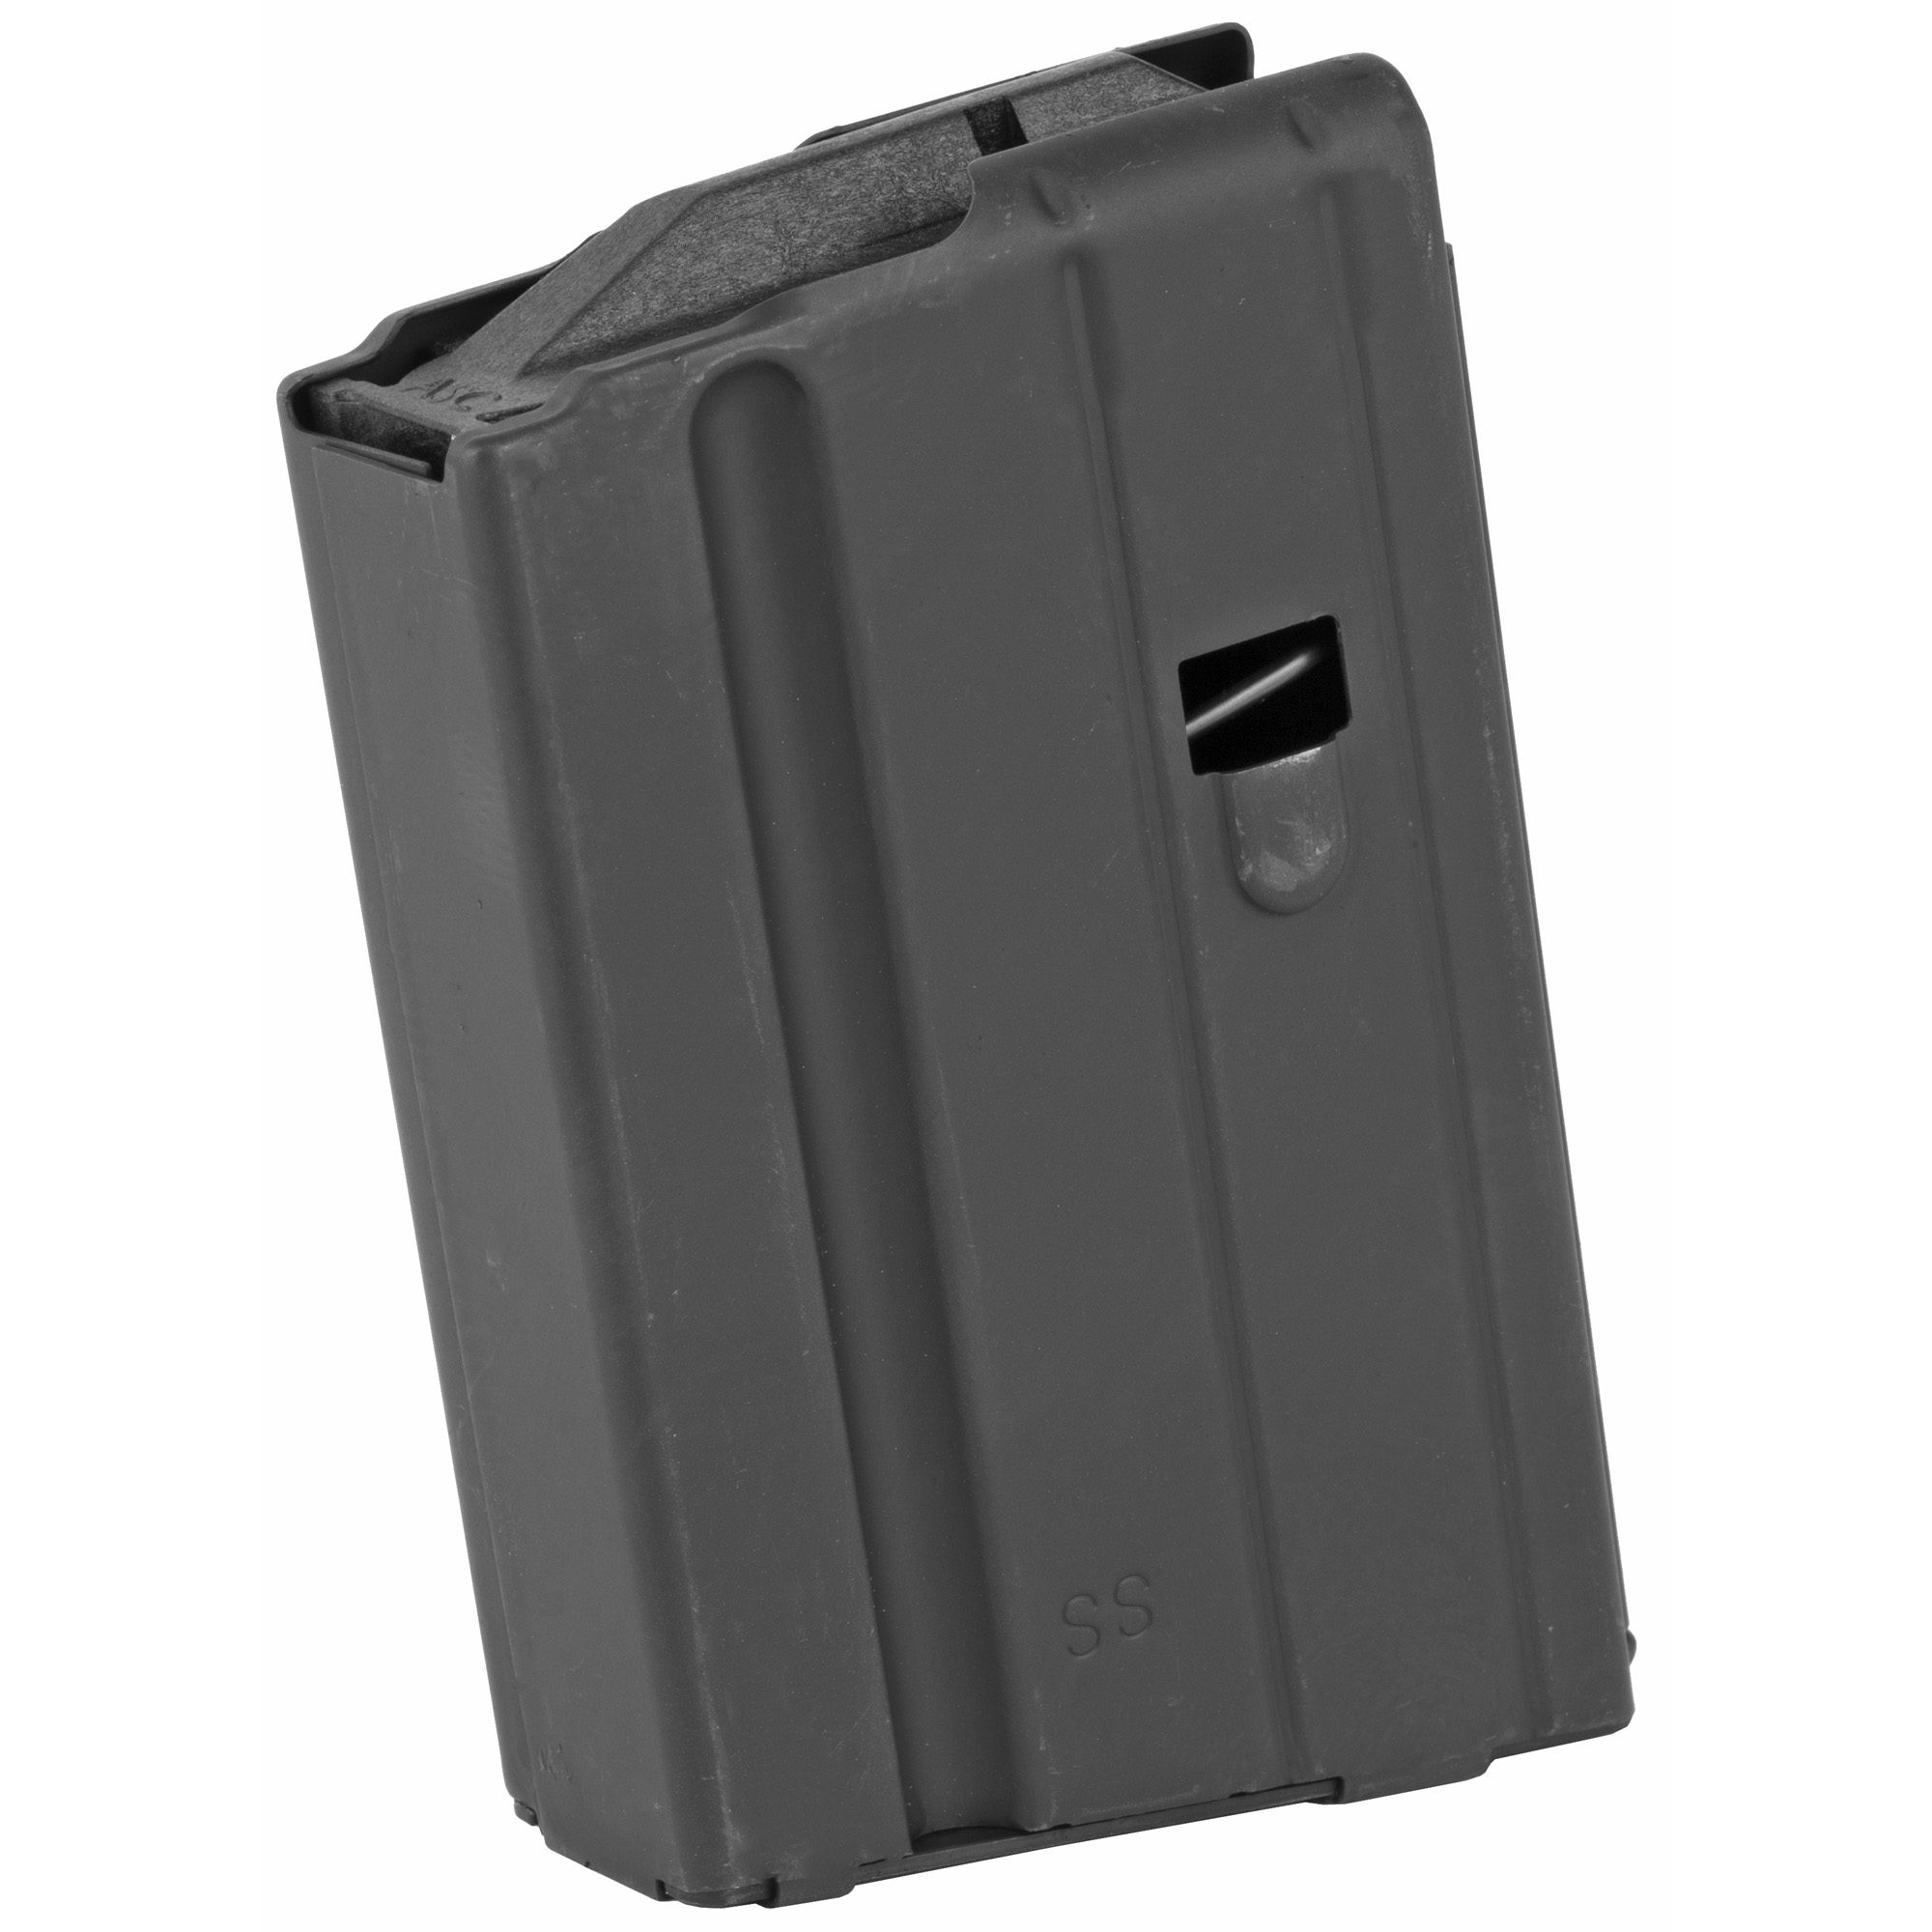 Mag Asc Ar 7.62x39 10rd Sts Blk